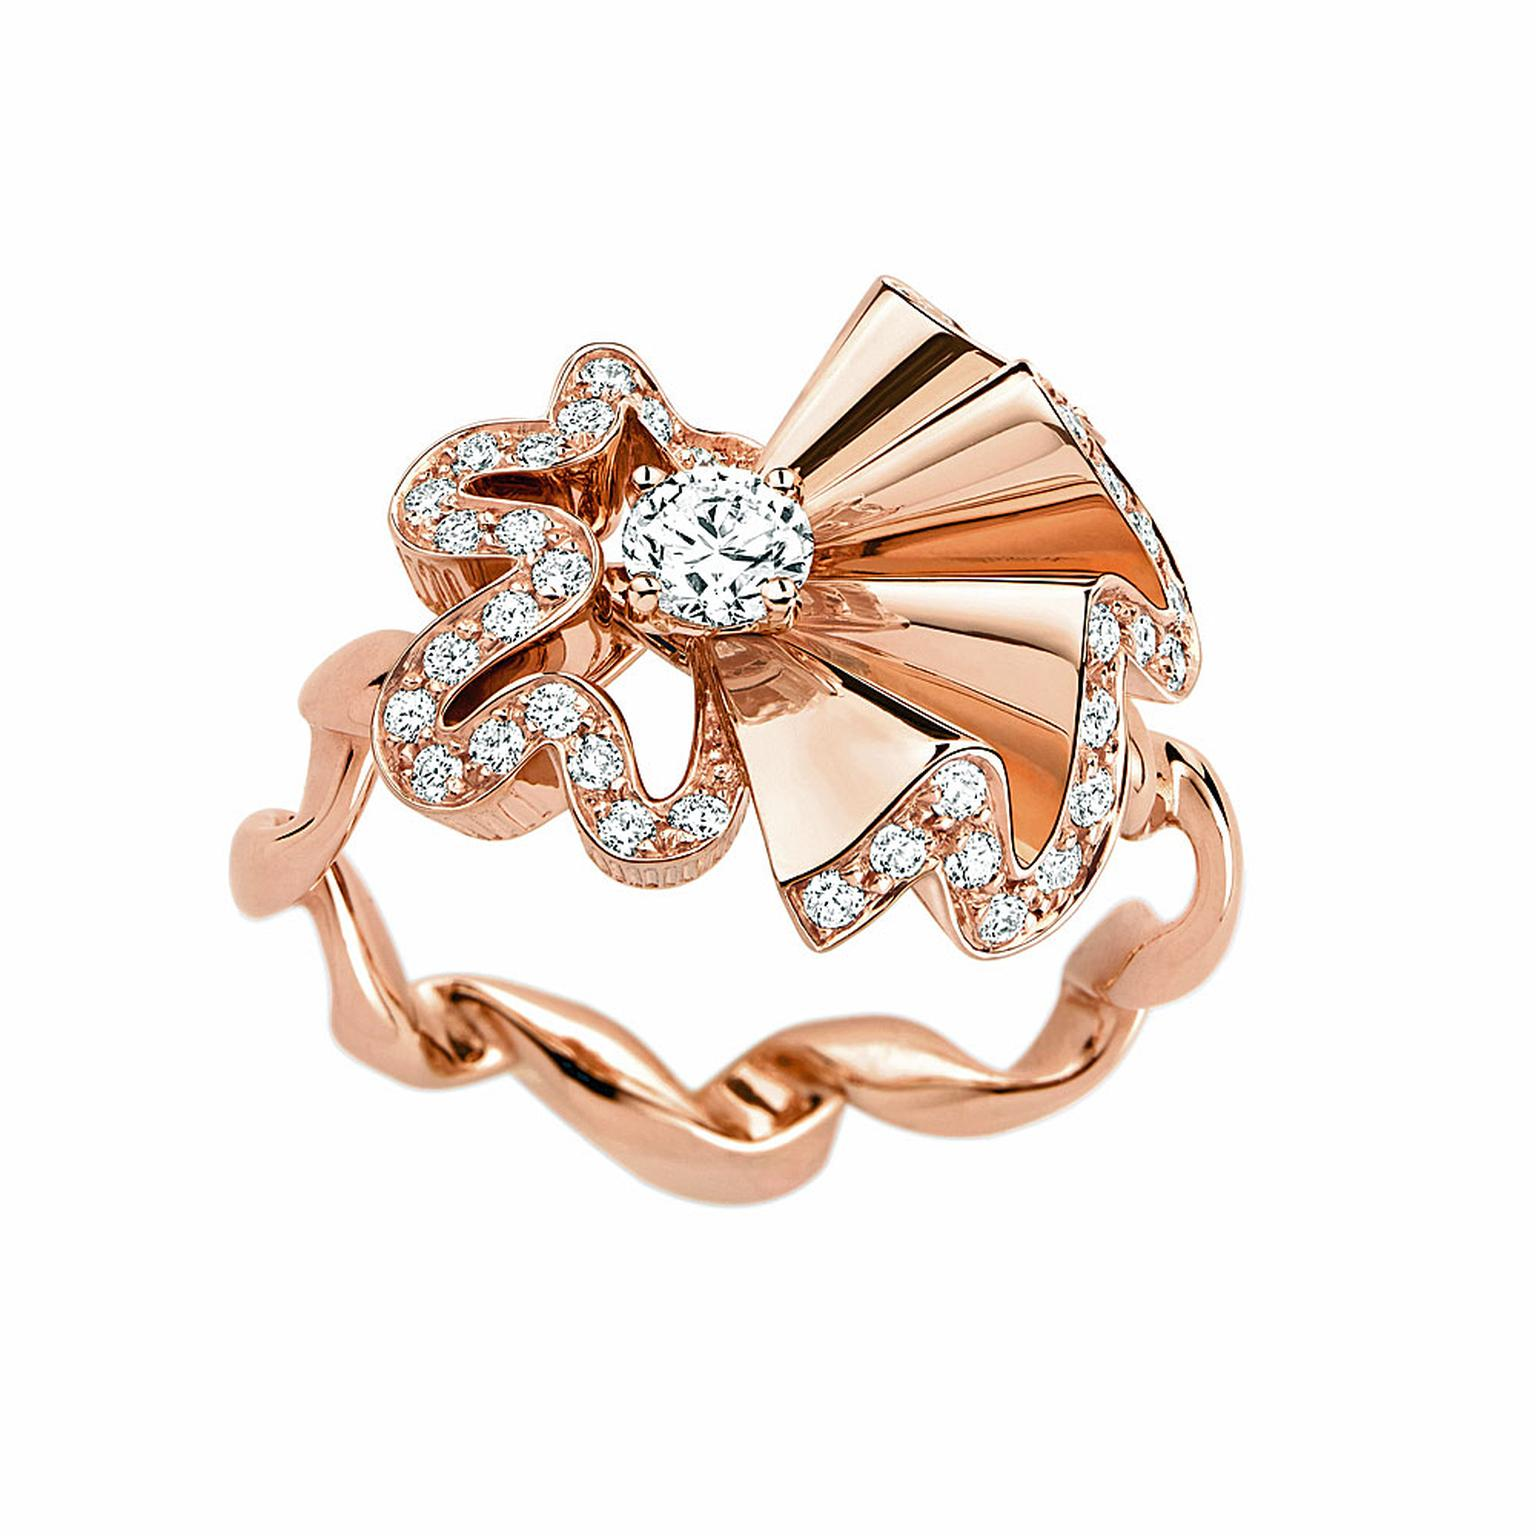 Archi Dior Cocotte Bague rose gold and diamond ring